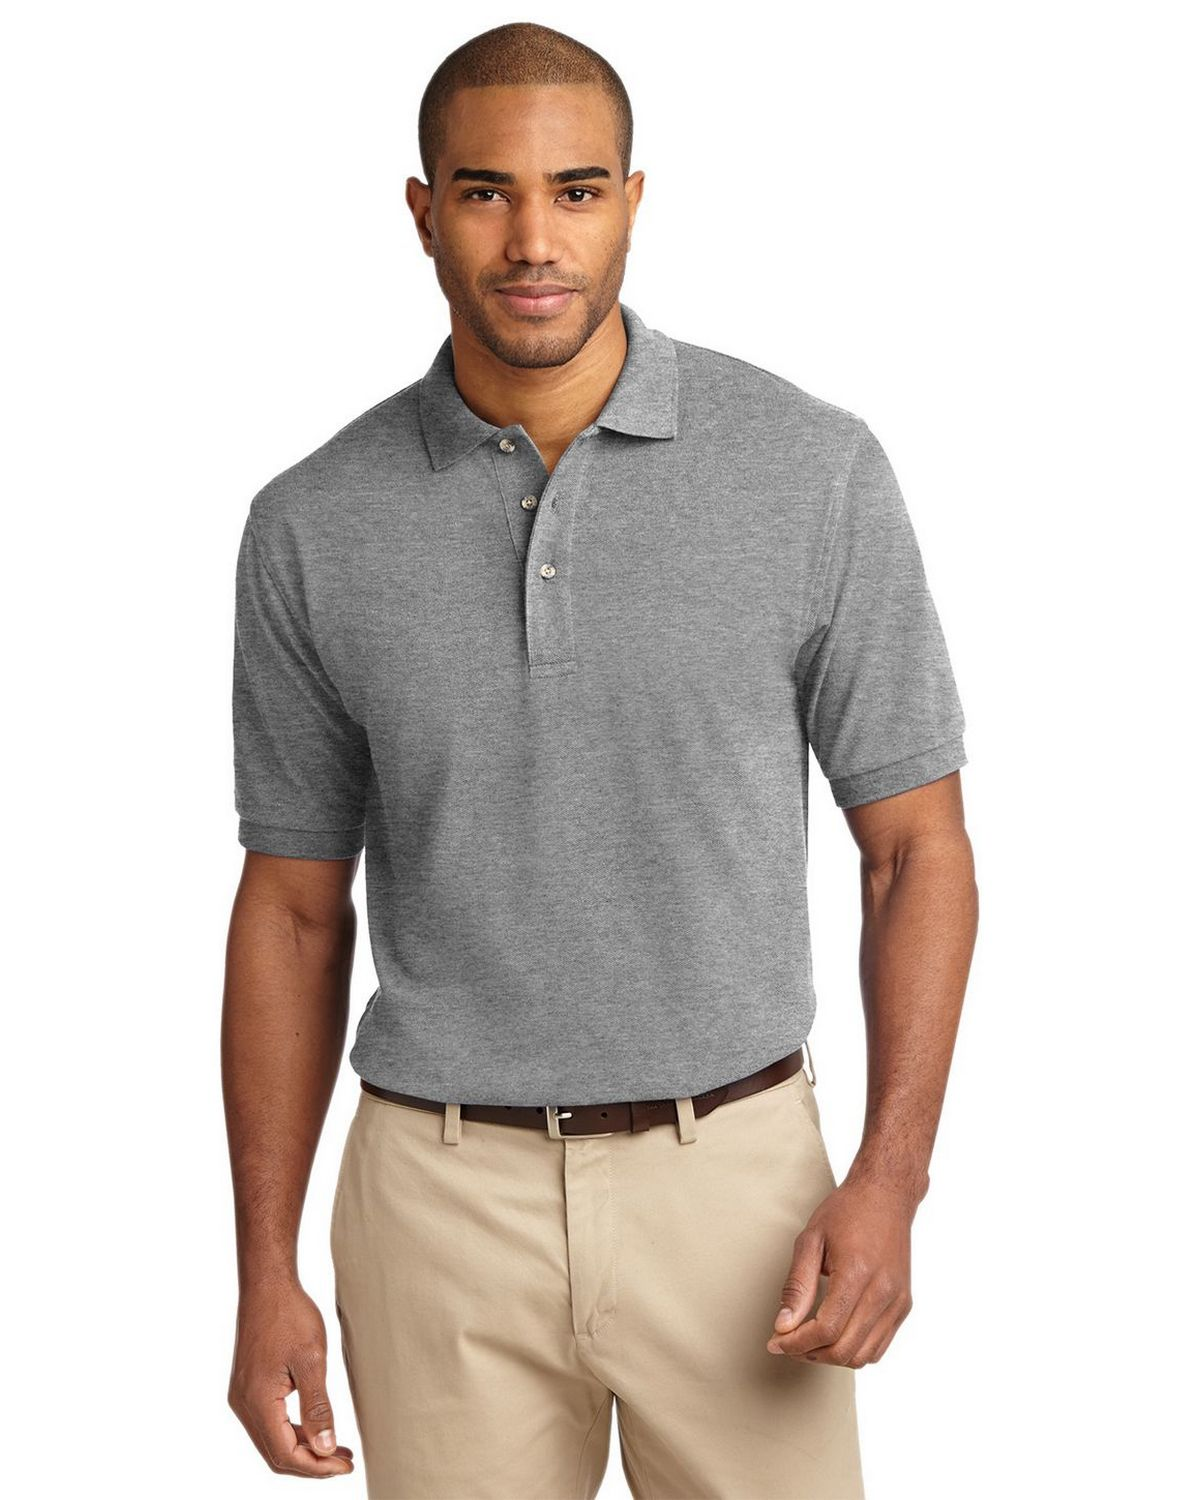 Port Authority K420 Pique Knit Polo - Oxford - XS